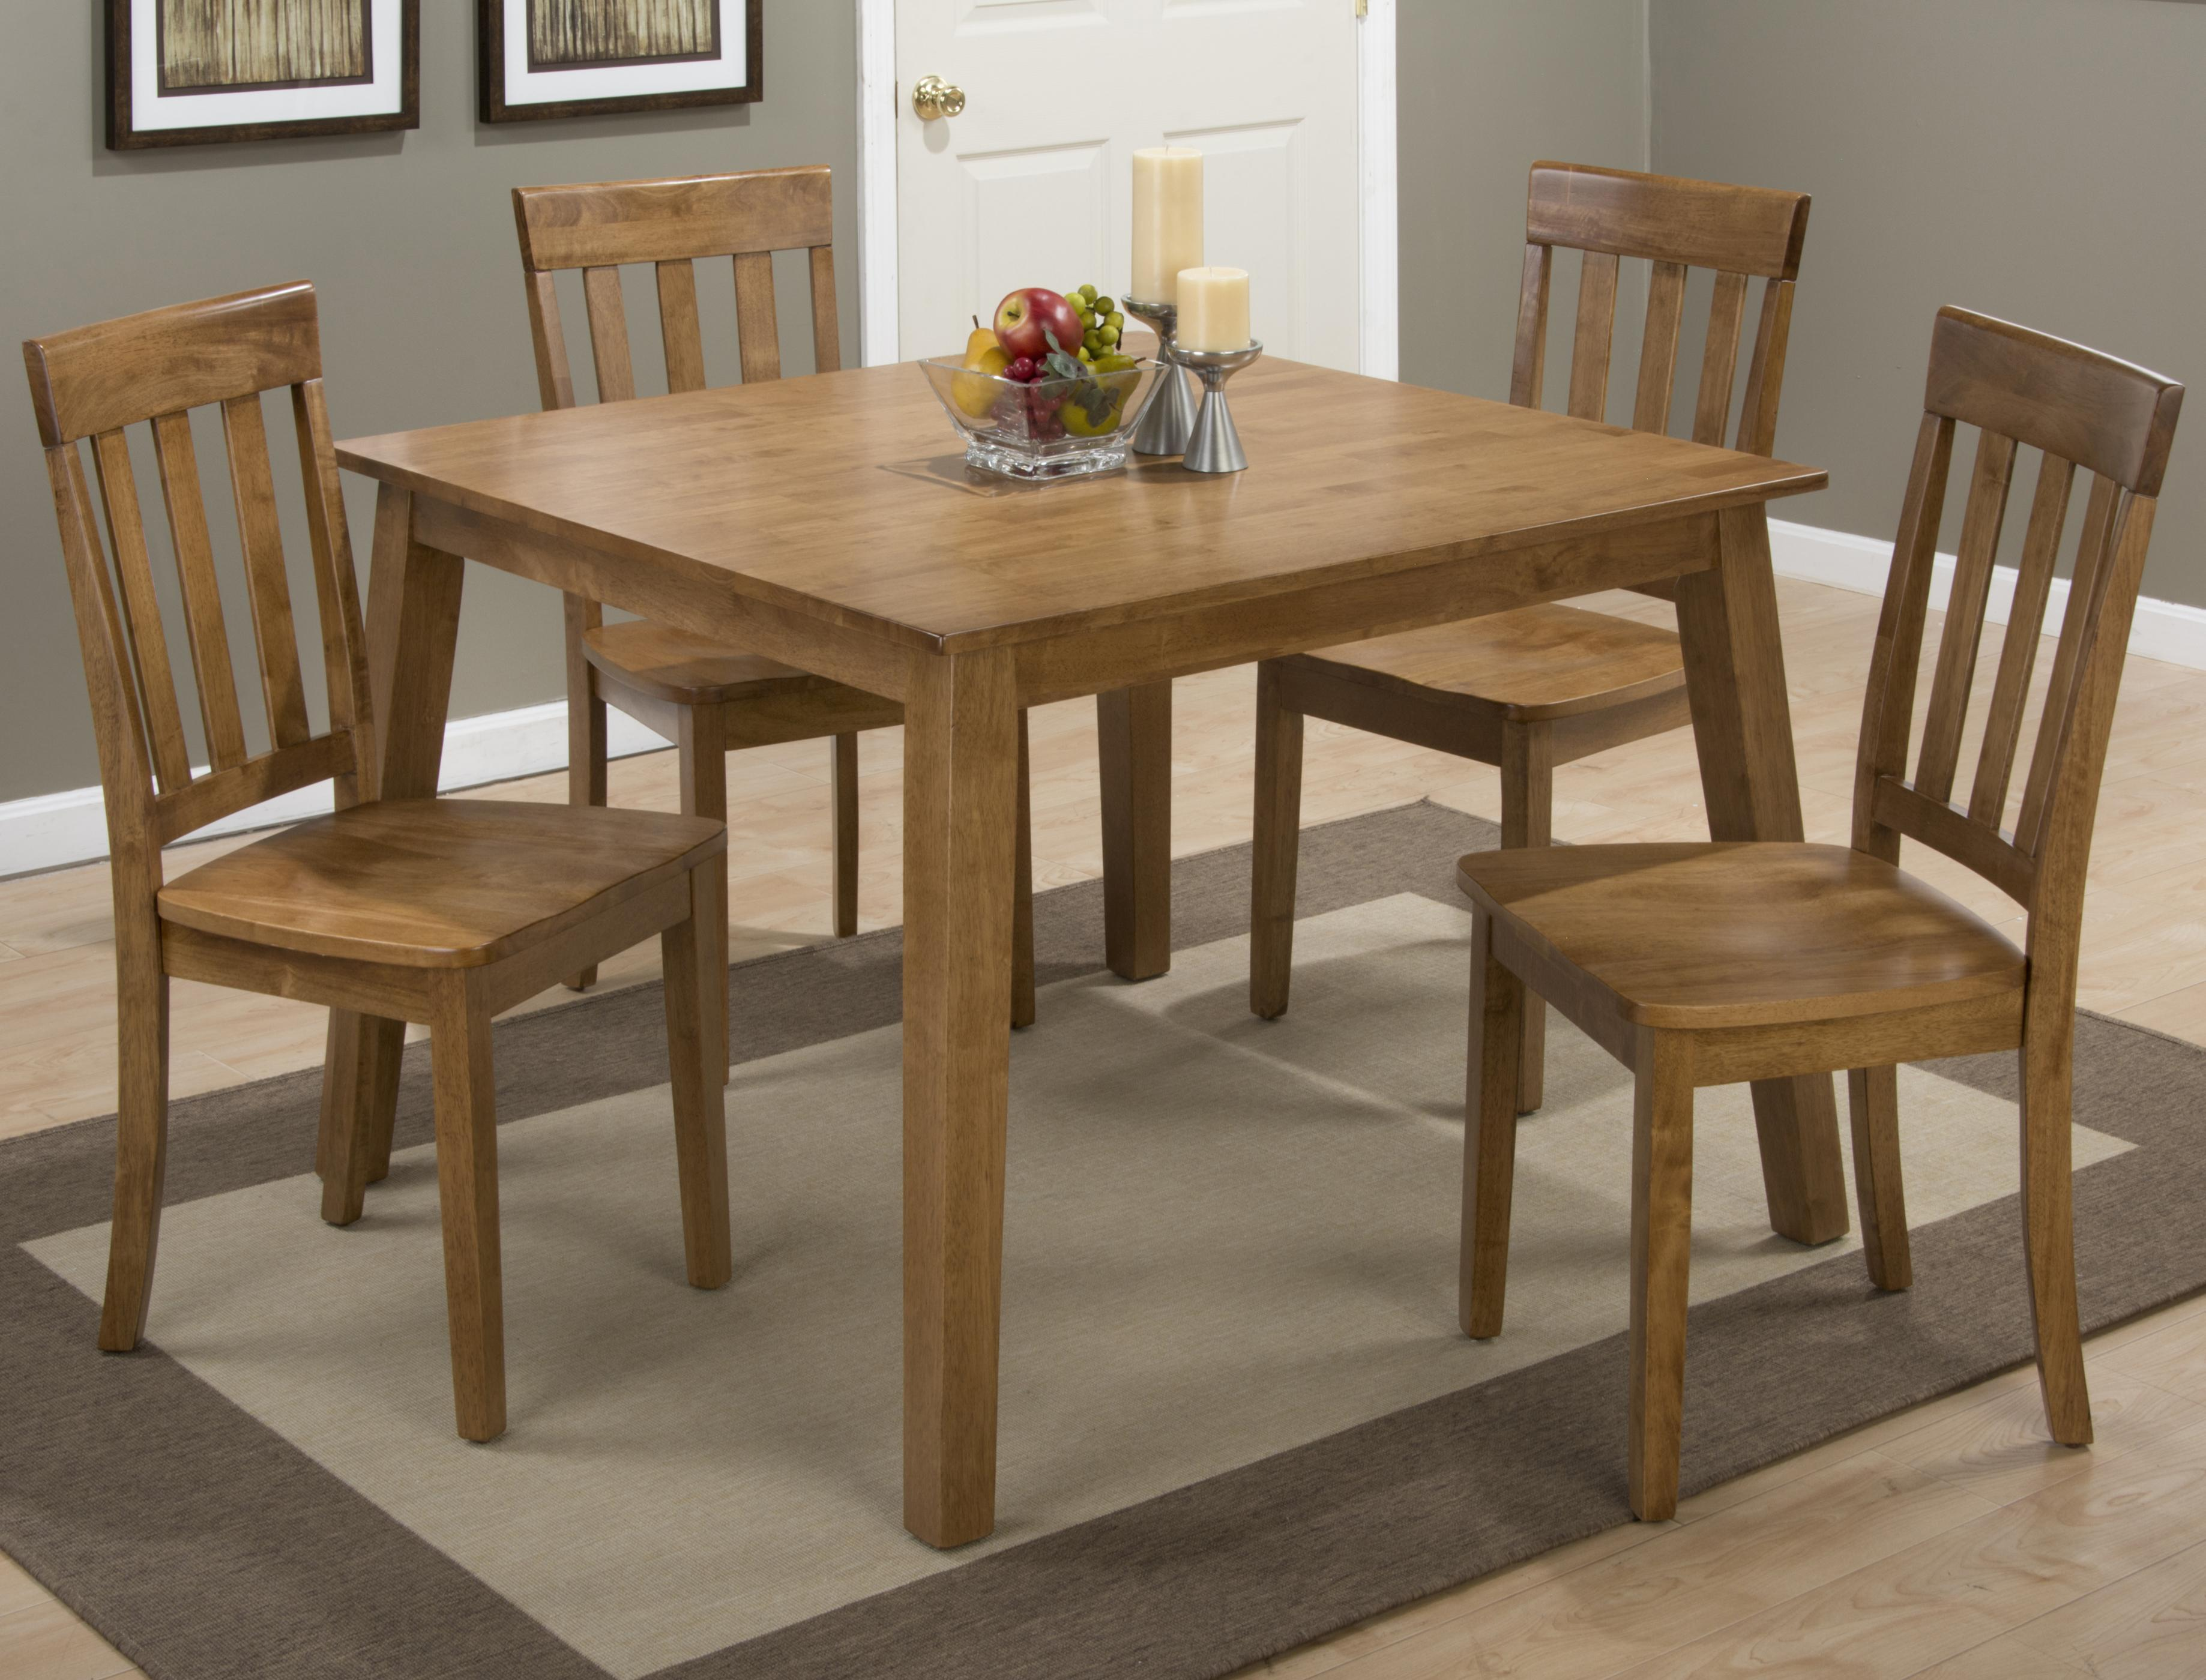 Square Table and 4 Chair Set